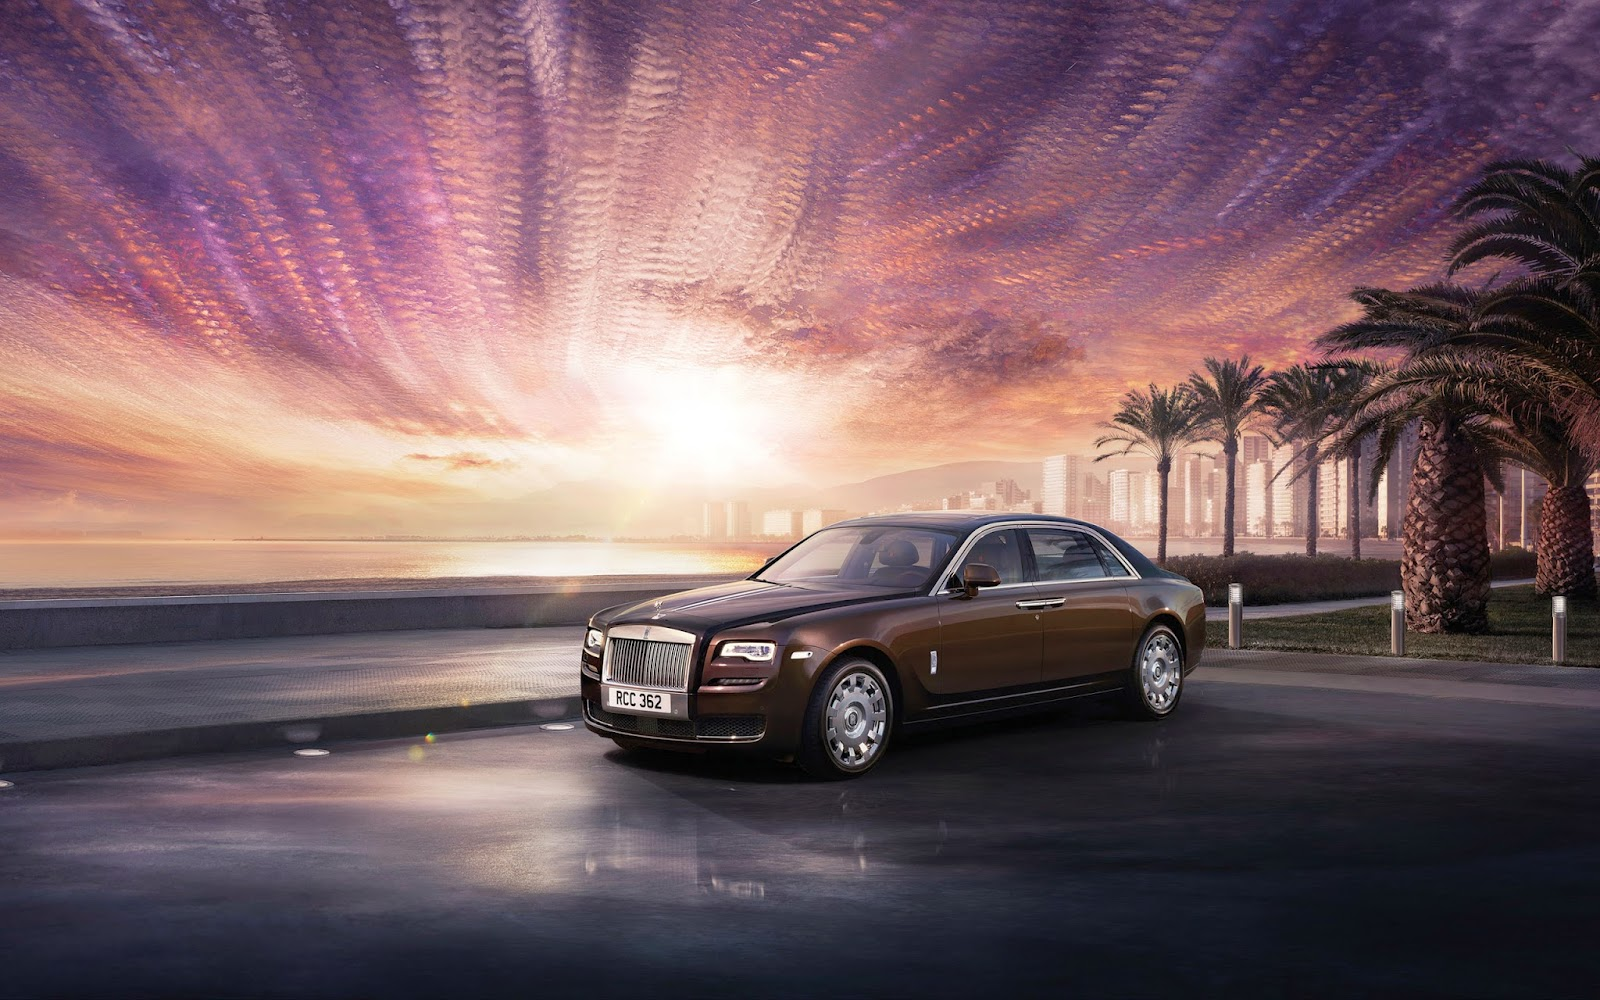 2015 Rolls-Royce Ghost Series sunset Wallpaper